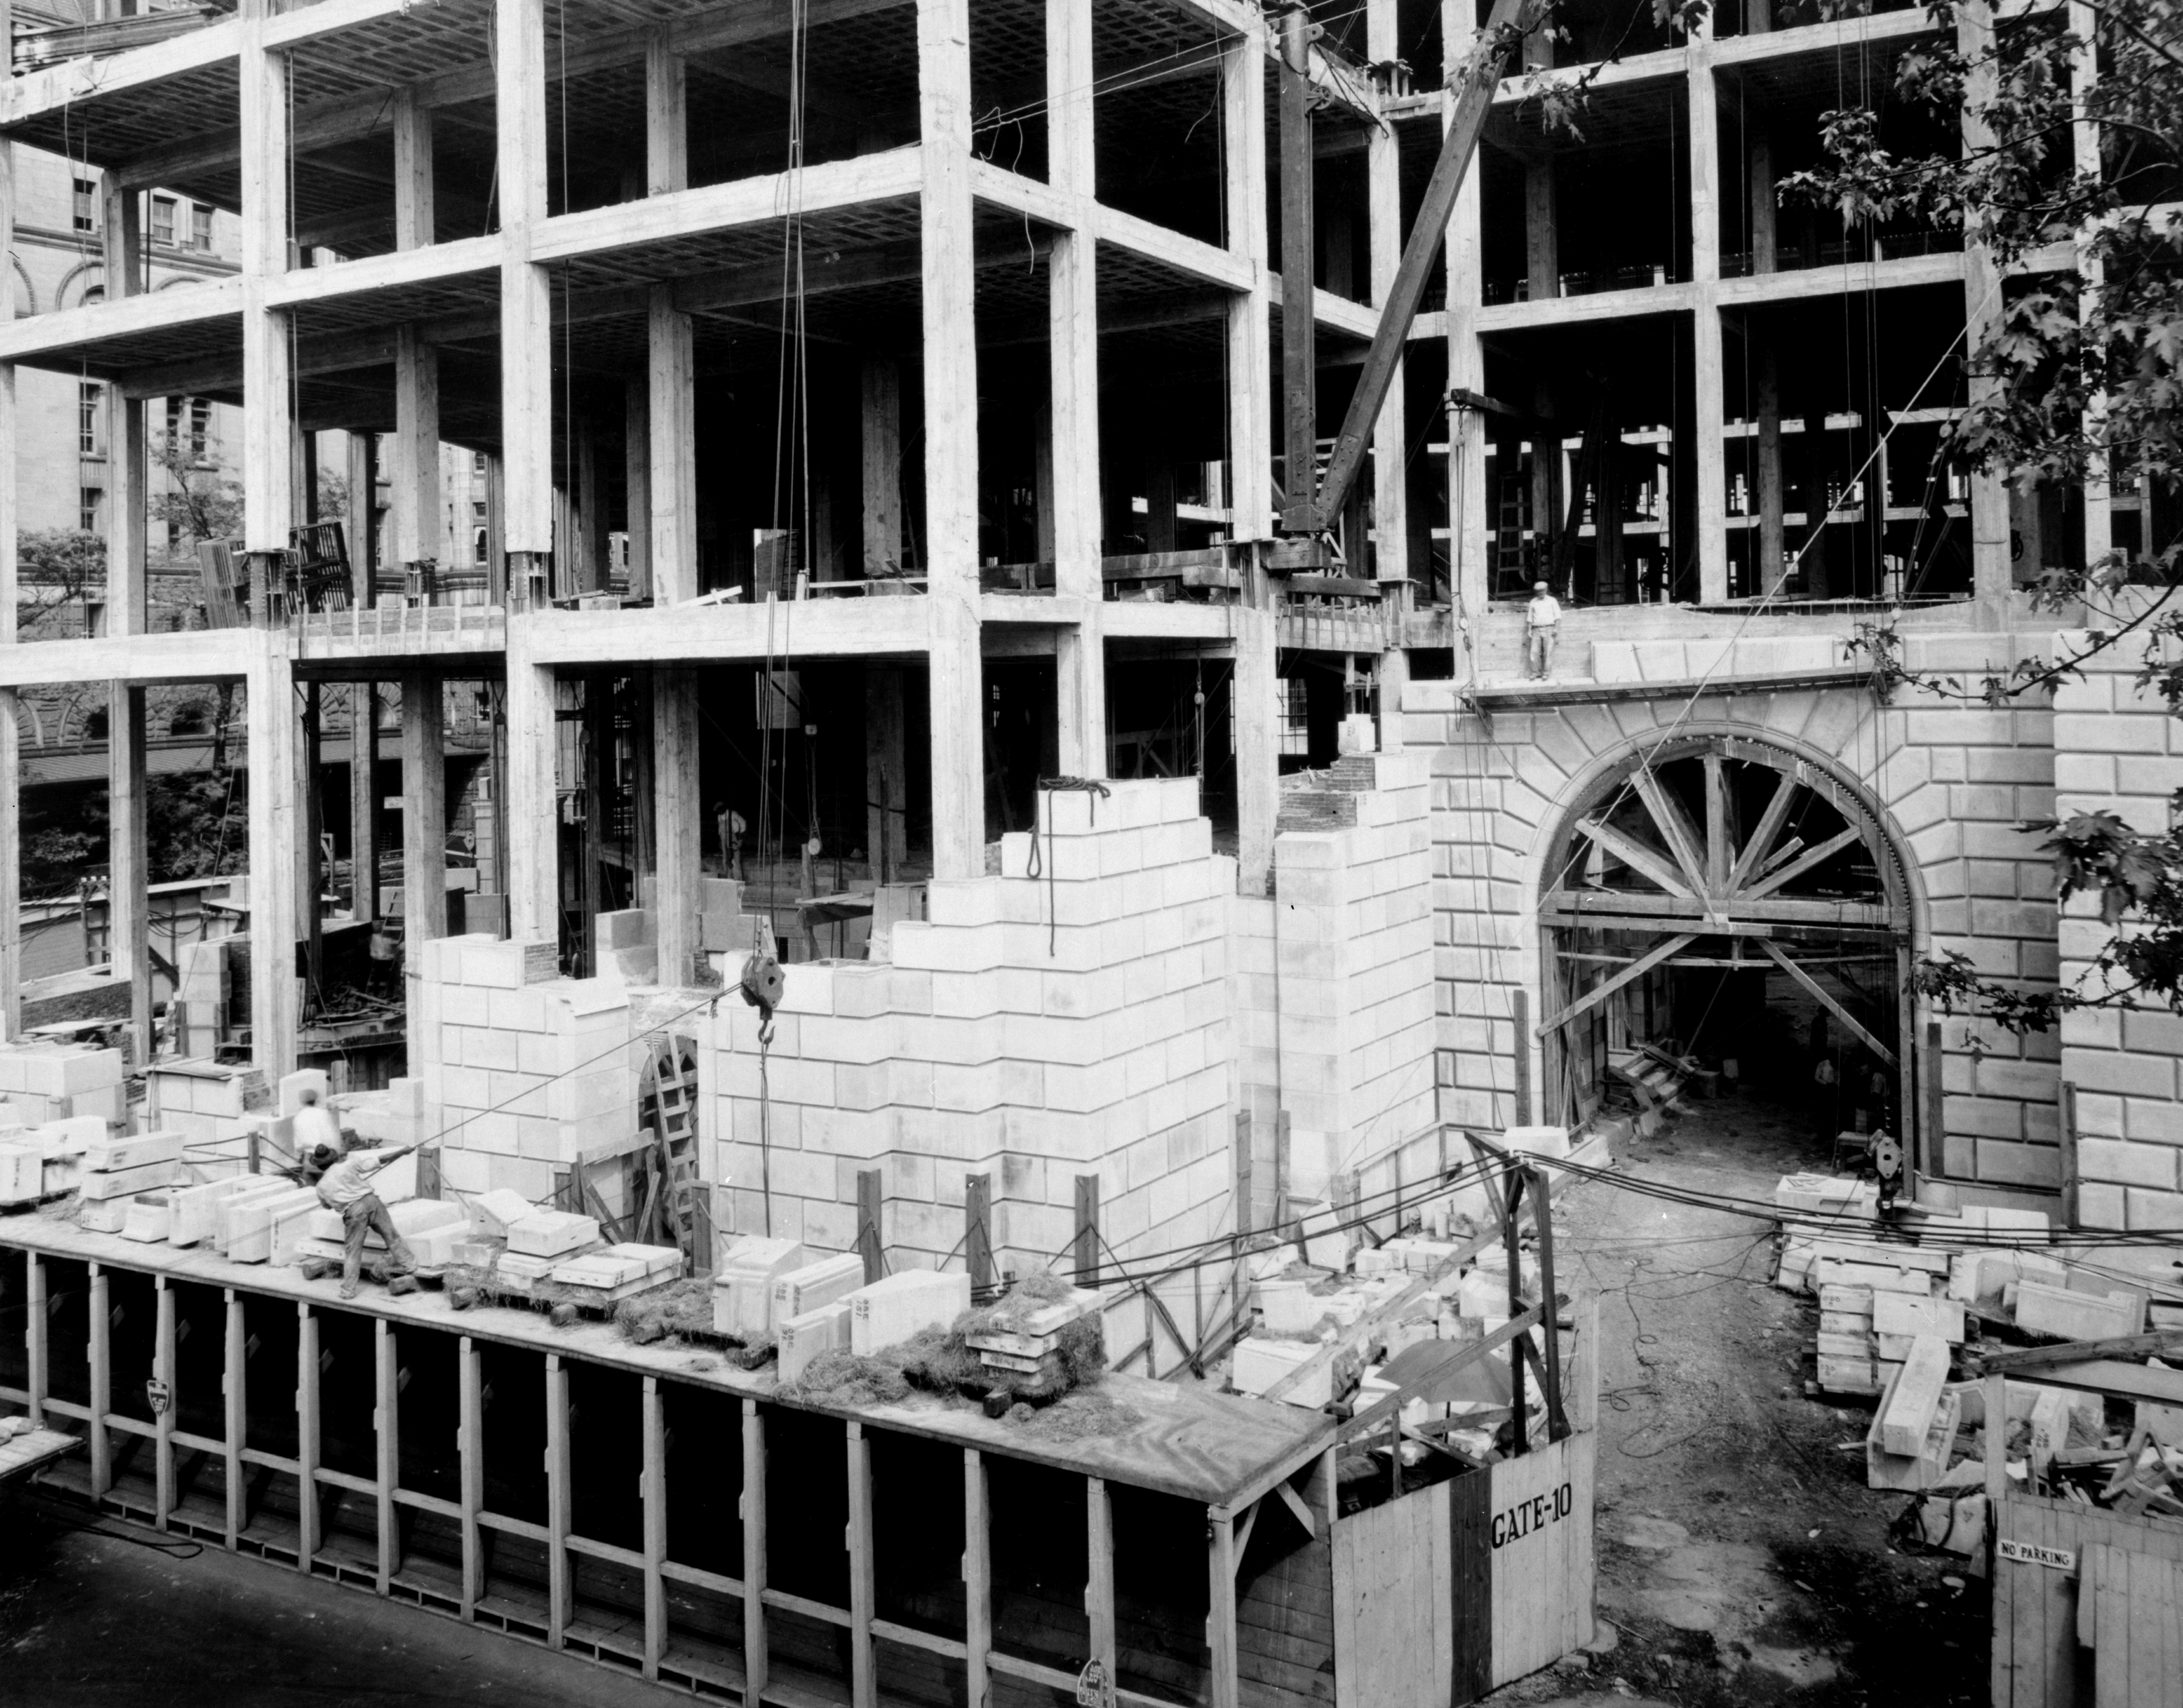 Construction detail of the limestone facade and steel framing.